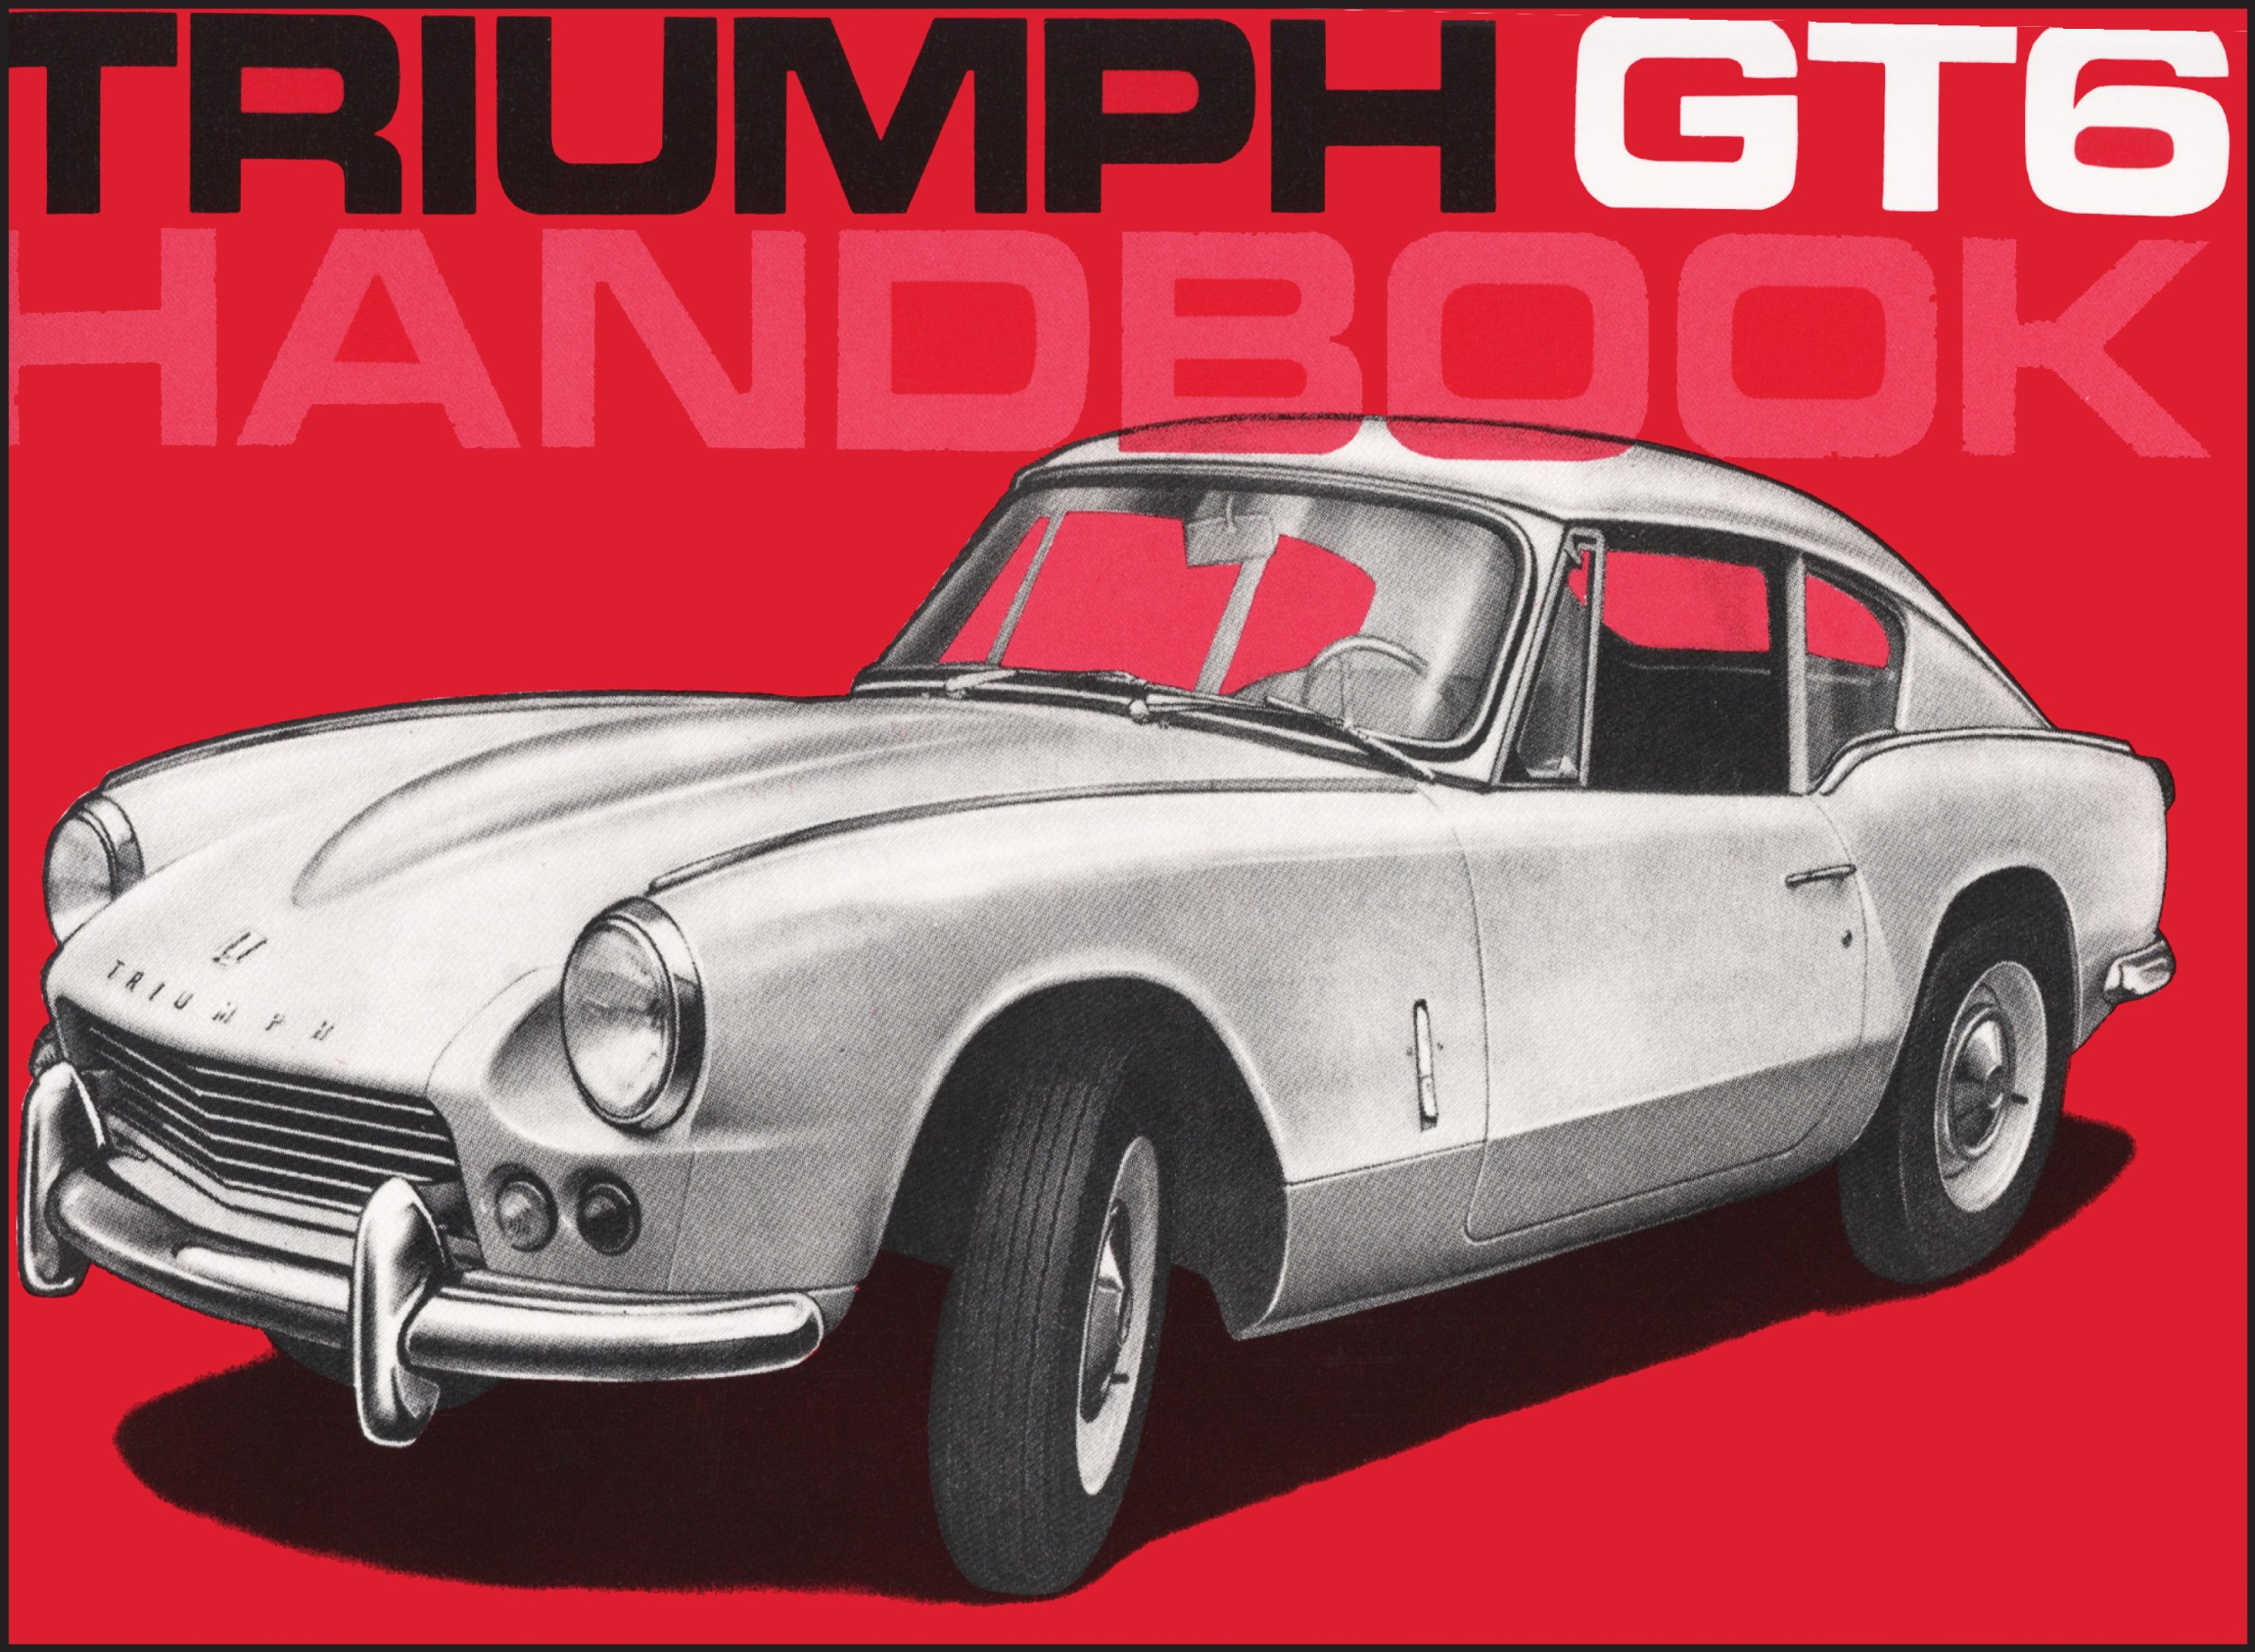 triumph gt6 owner s handbook no 512944 brooklands books ltd rh amazon com triumph gt6 parts manual triumph gt6 service manual